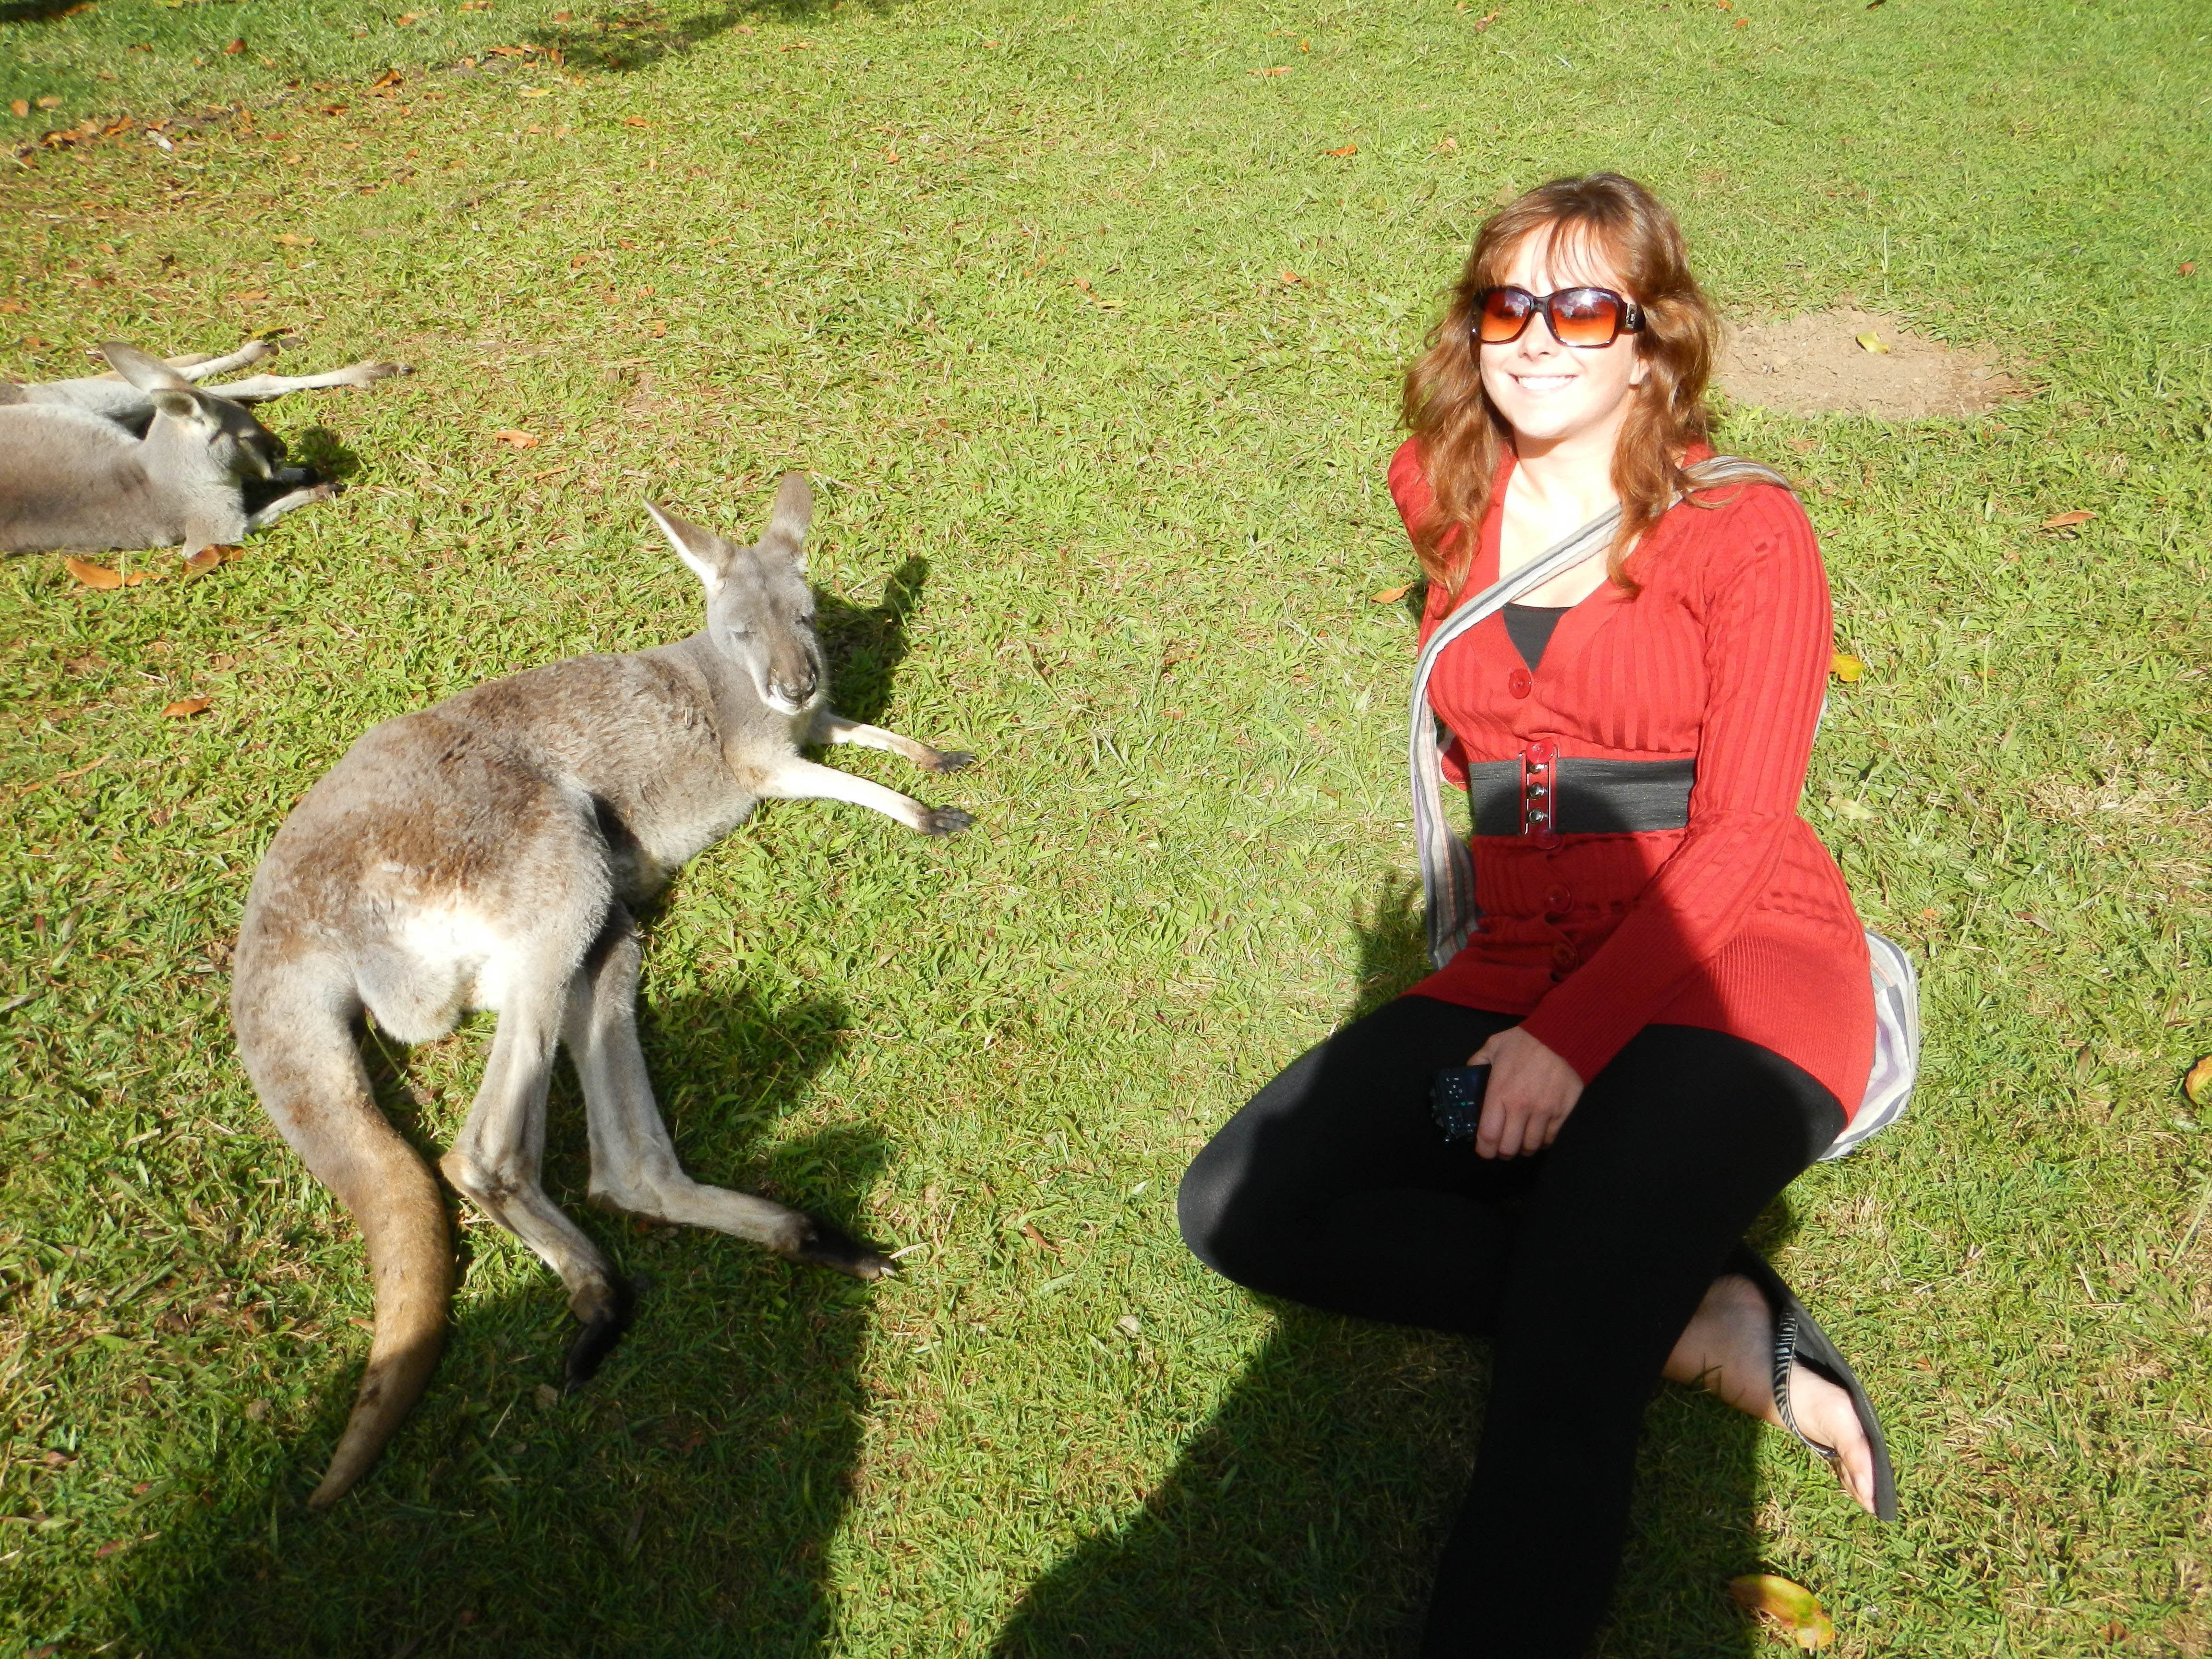 Sunbathing in a grass field with a kangaroo at the zoo